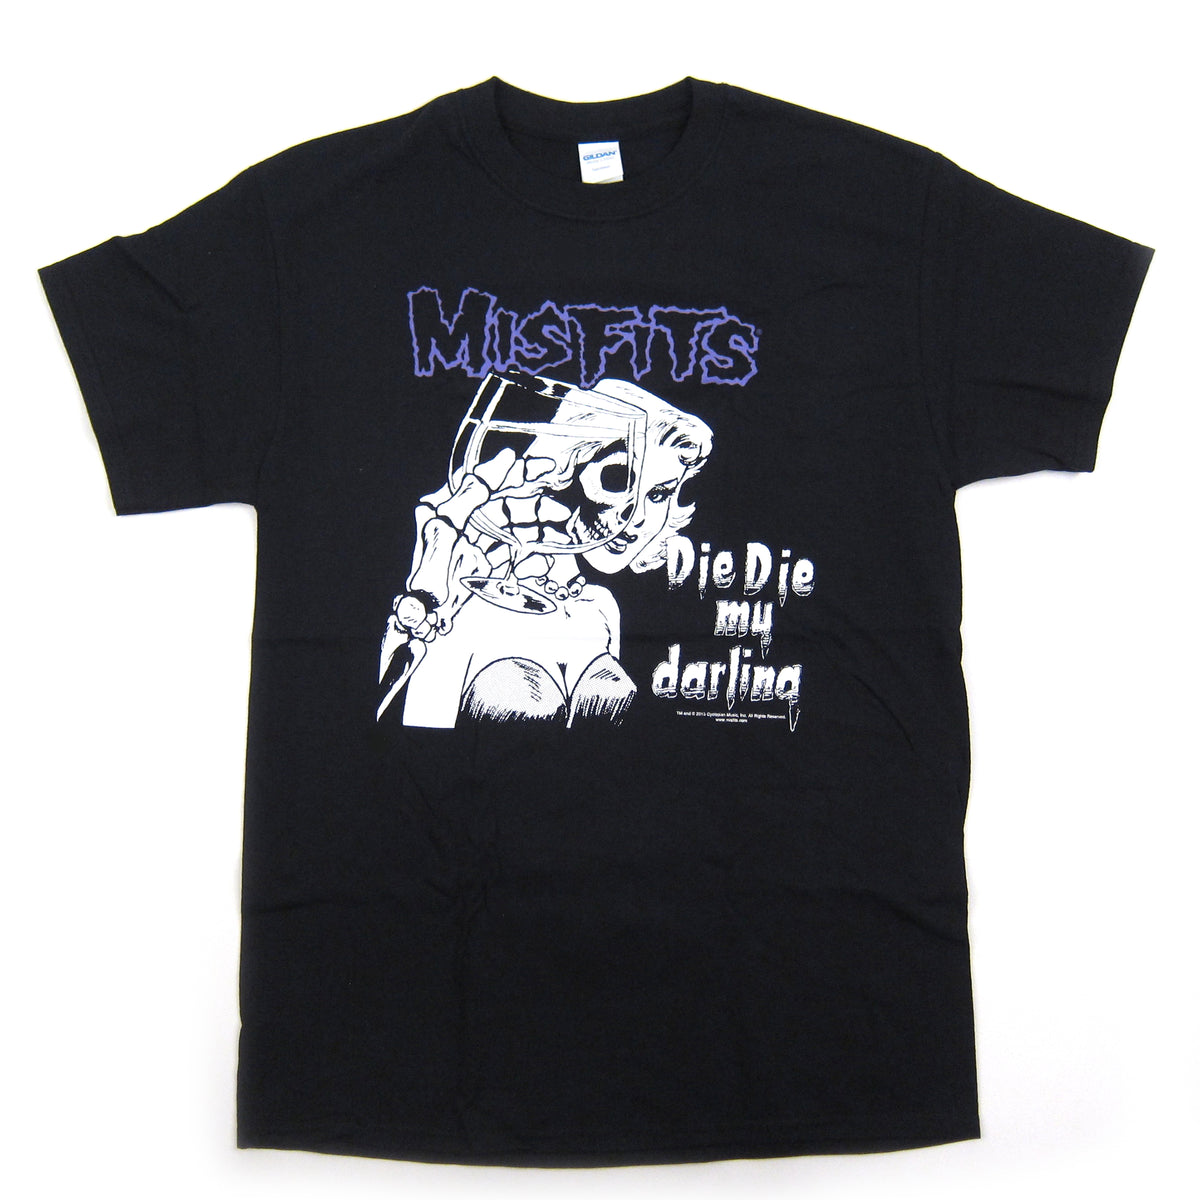 Misfits: Die Die My Darling Shirt - Black